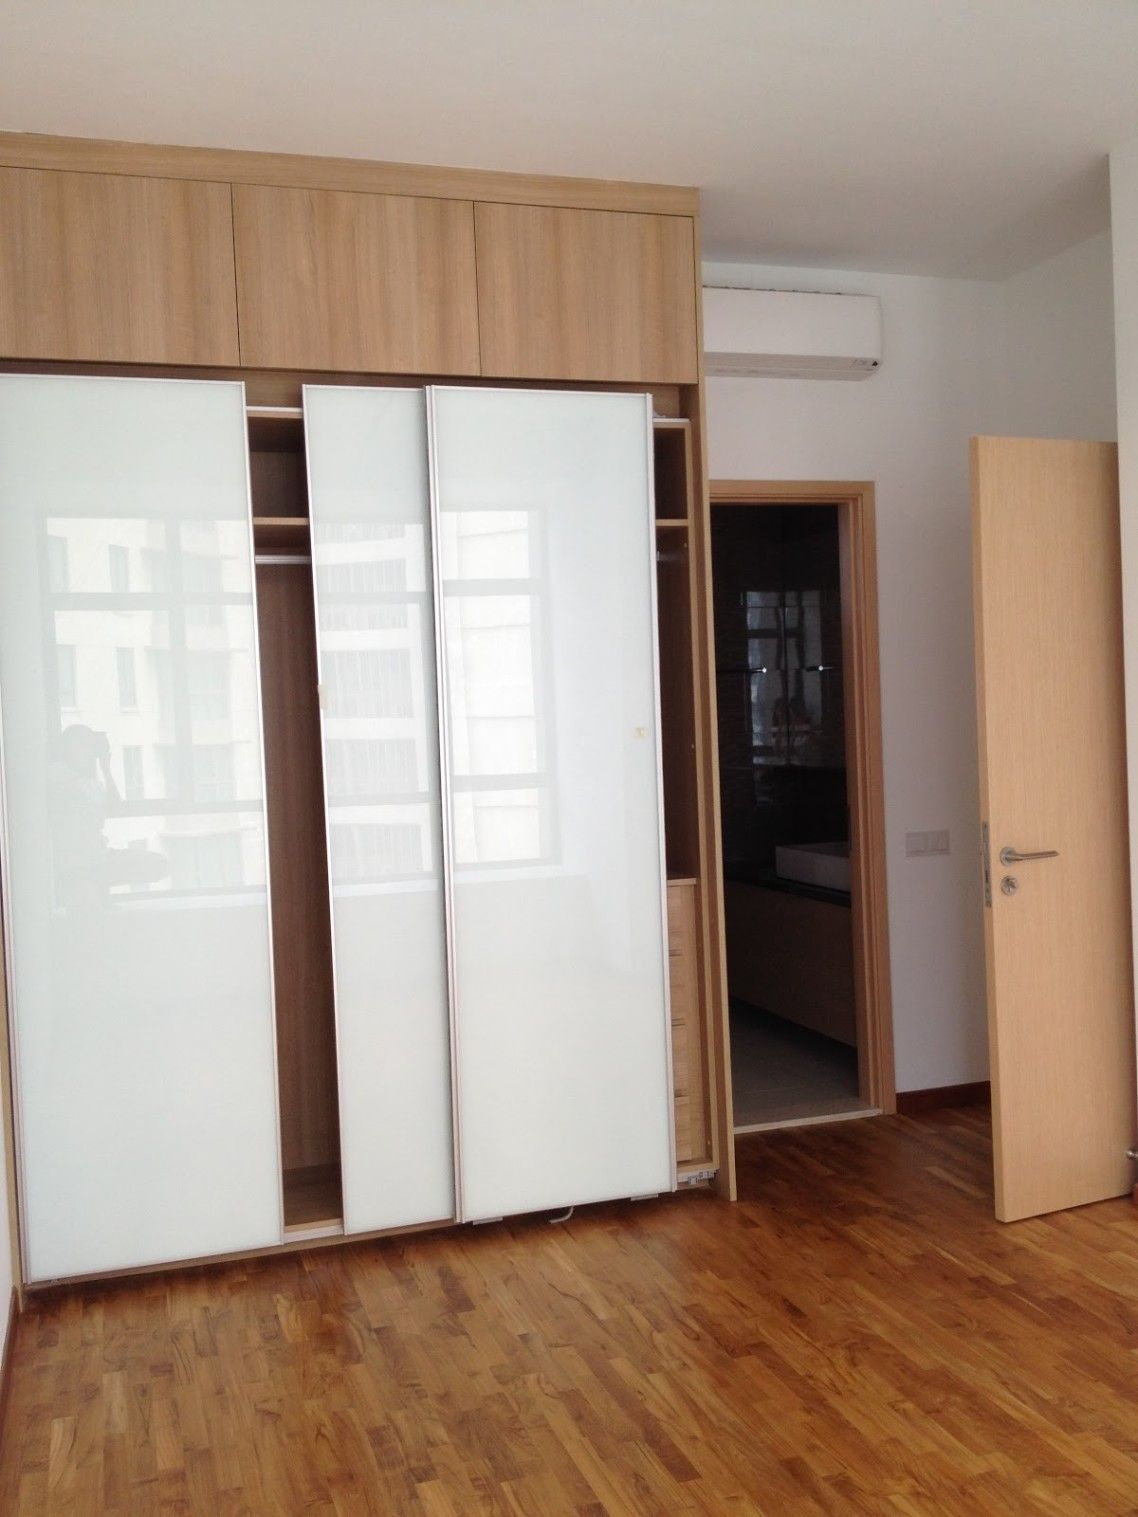 Plywood Door Designs For Rooms Unpolished Oak Wood Buil In Wardrobe For Small Bedroom